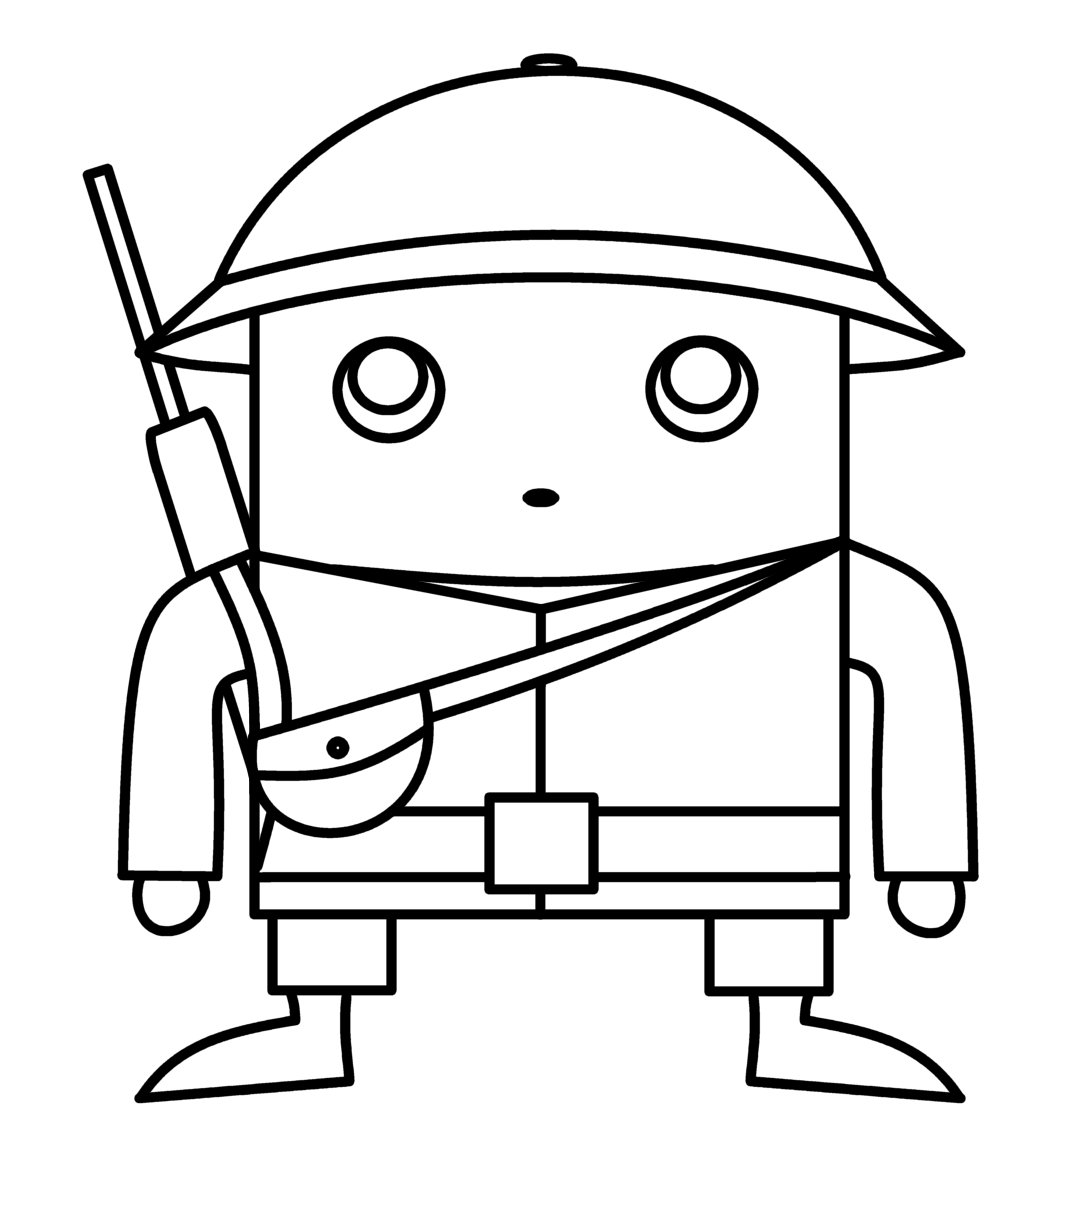 Cartoon soldier drawing